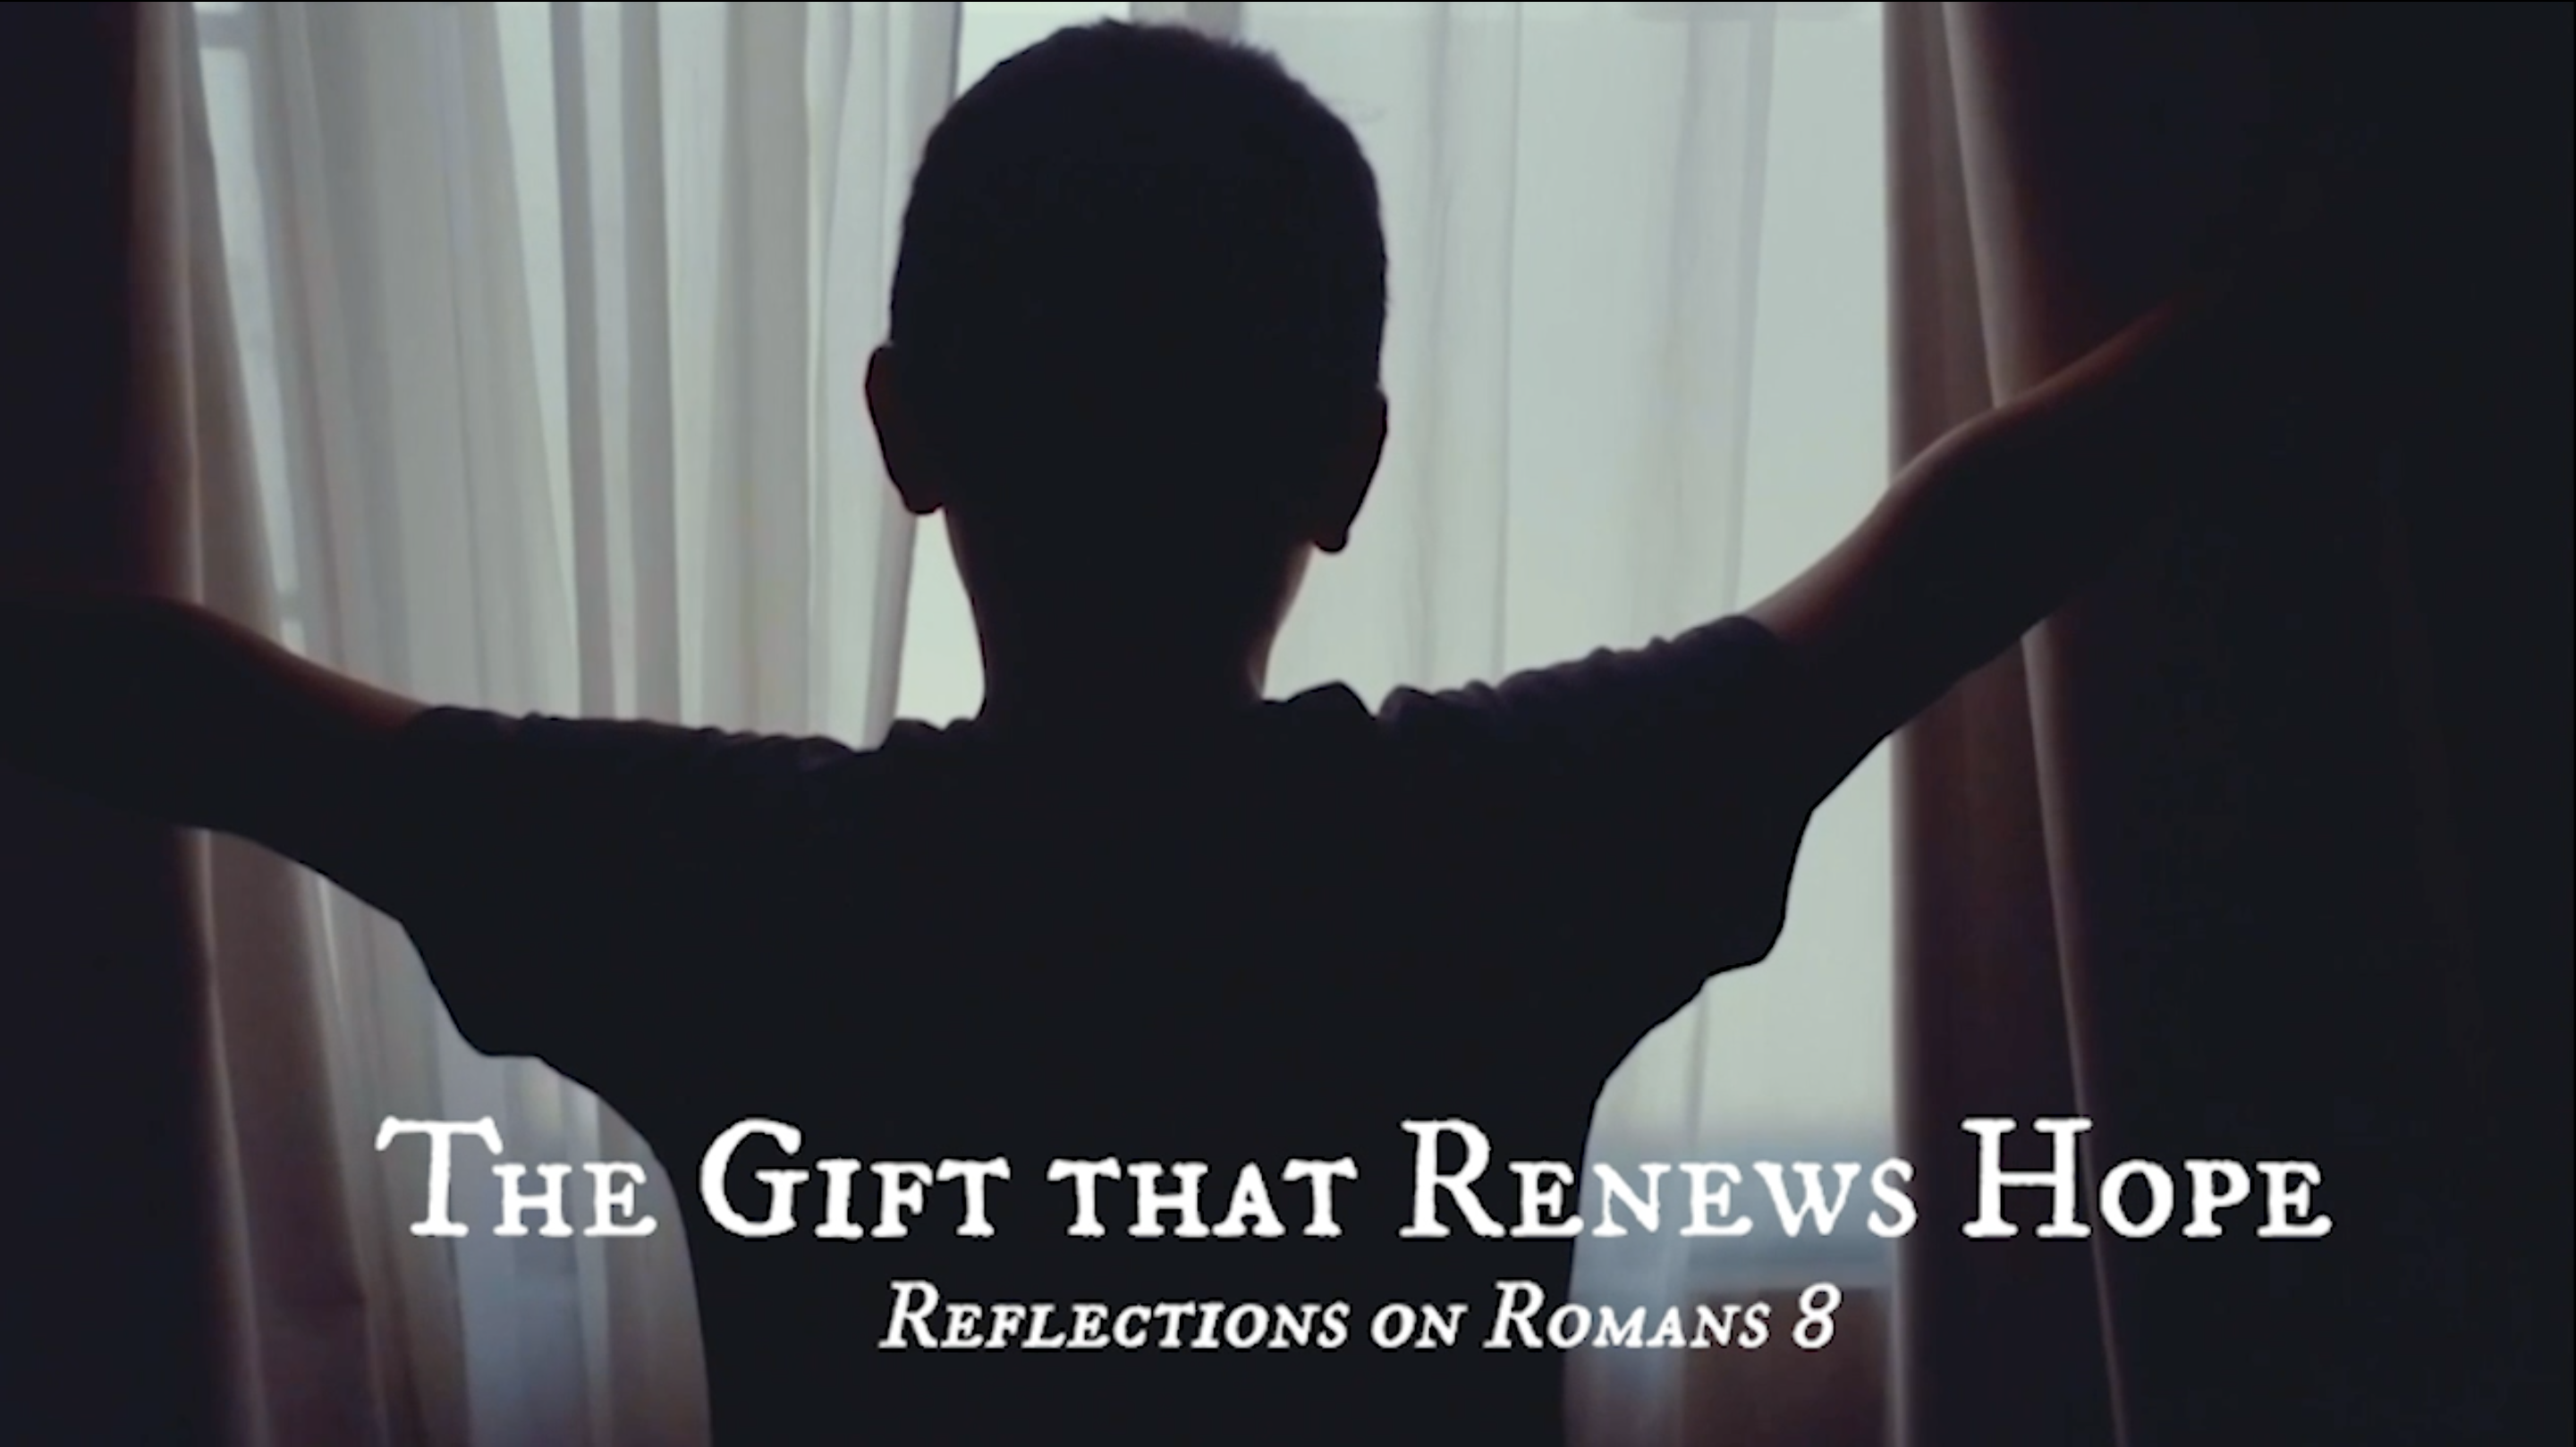 The Gift that Renews Hope